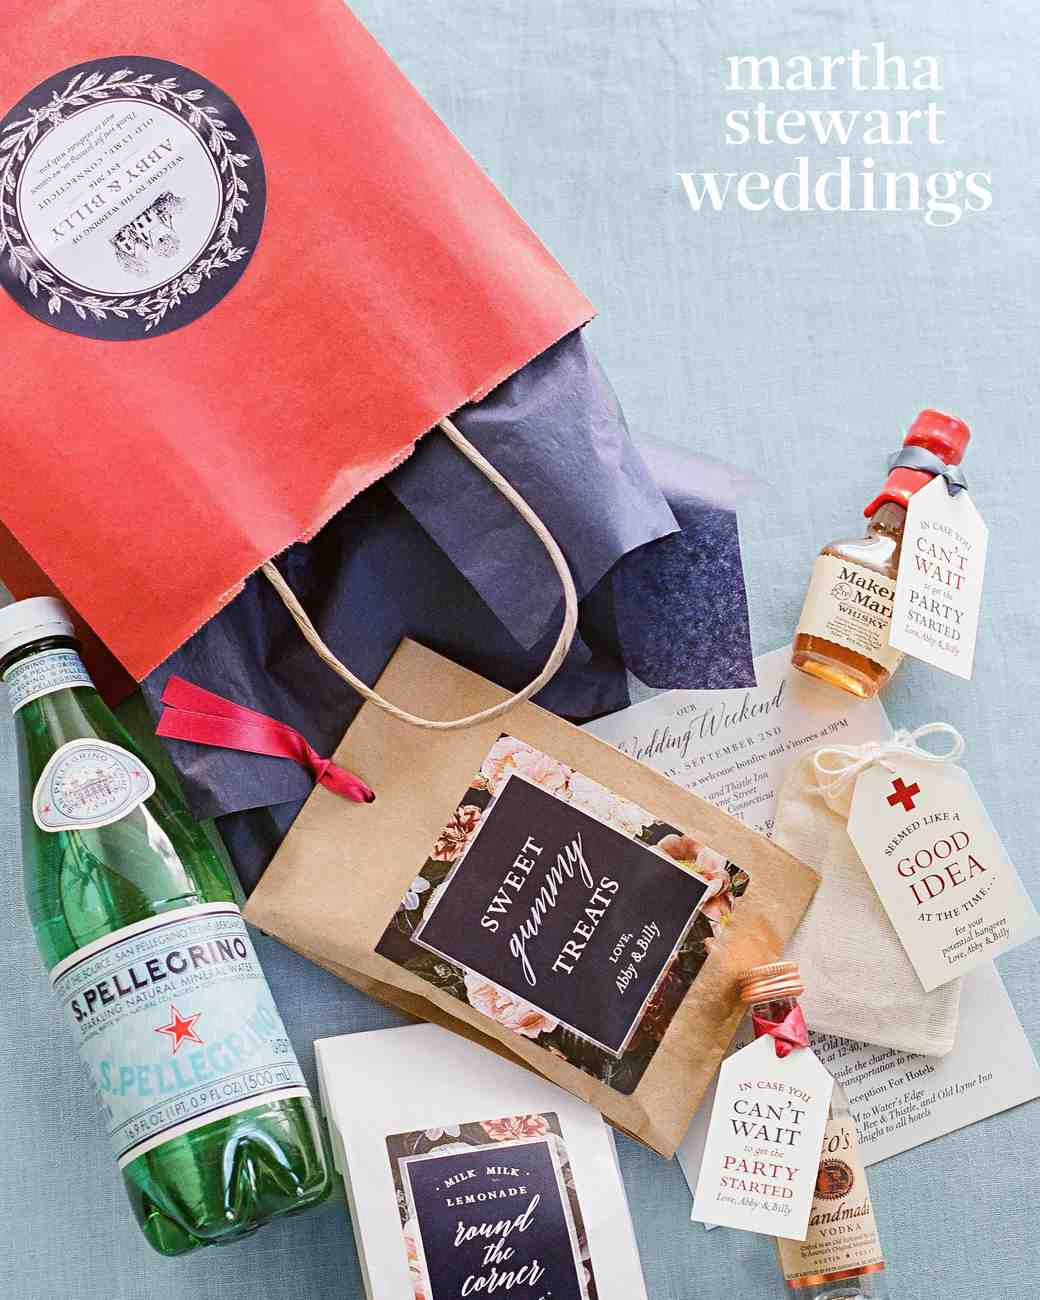 abby elliott bill kennedy wedding welcome bag